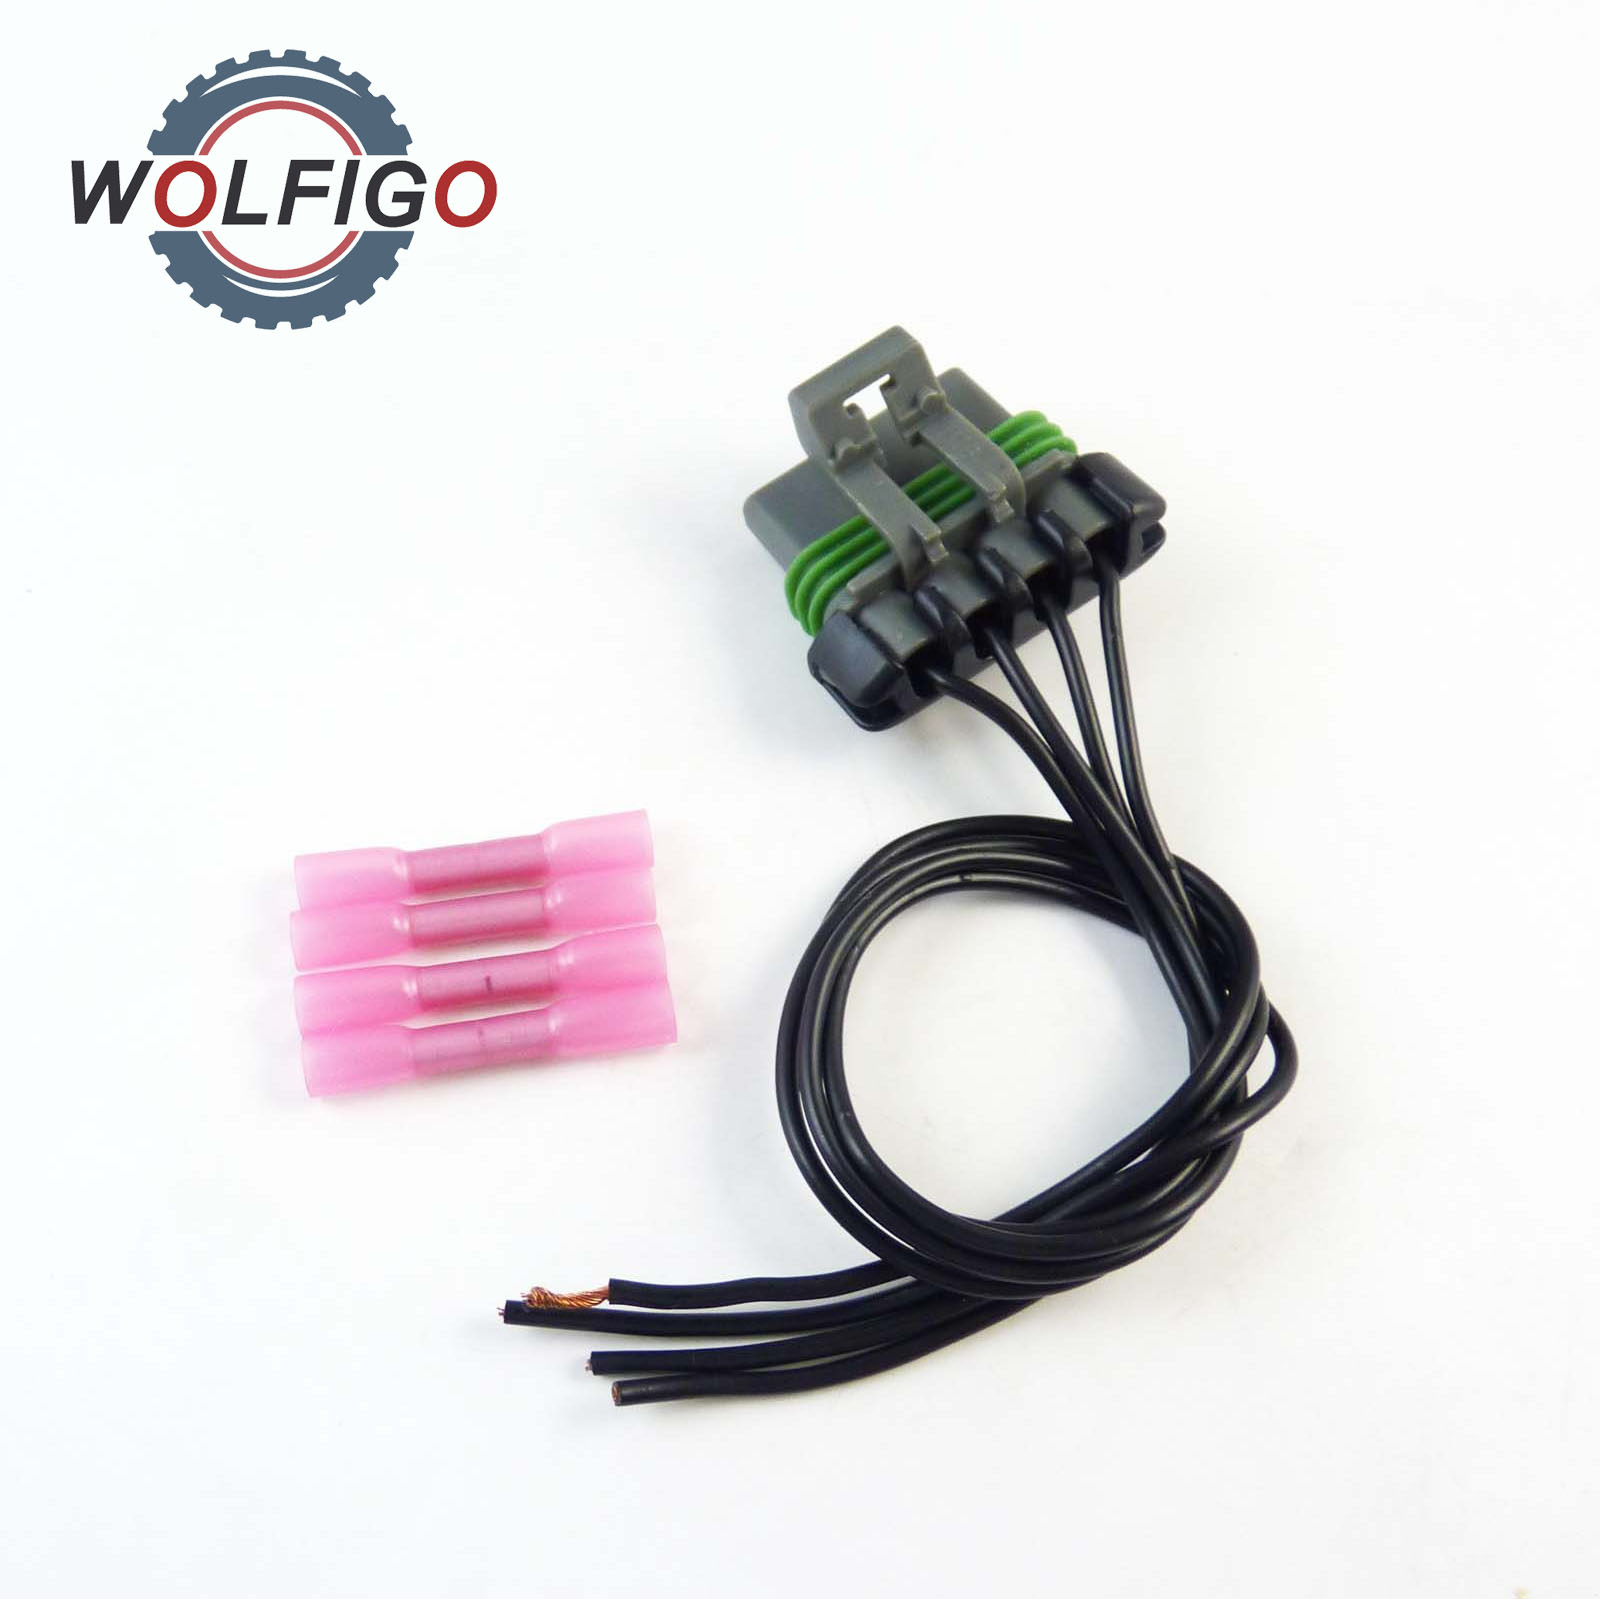 US $6.5 7% OFF|WOLFIGO HVAC Blower Motor Resistor Connector Pigtail Ac Blower Motor Resistor Wiring Harness on